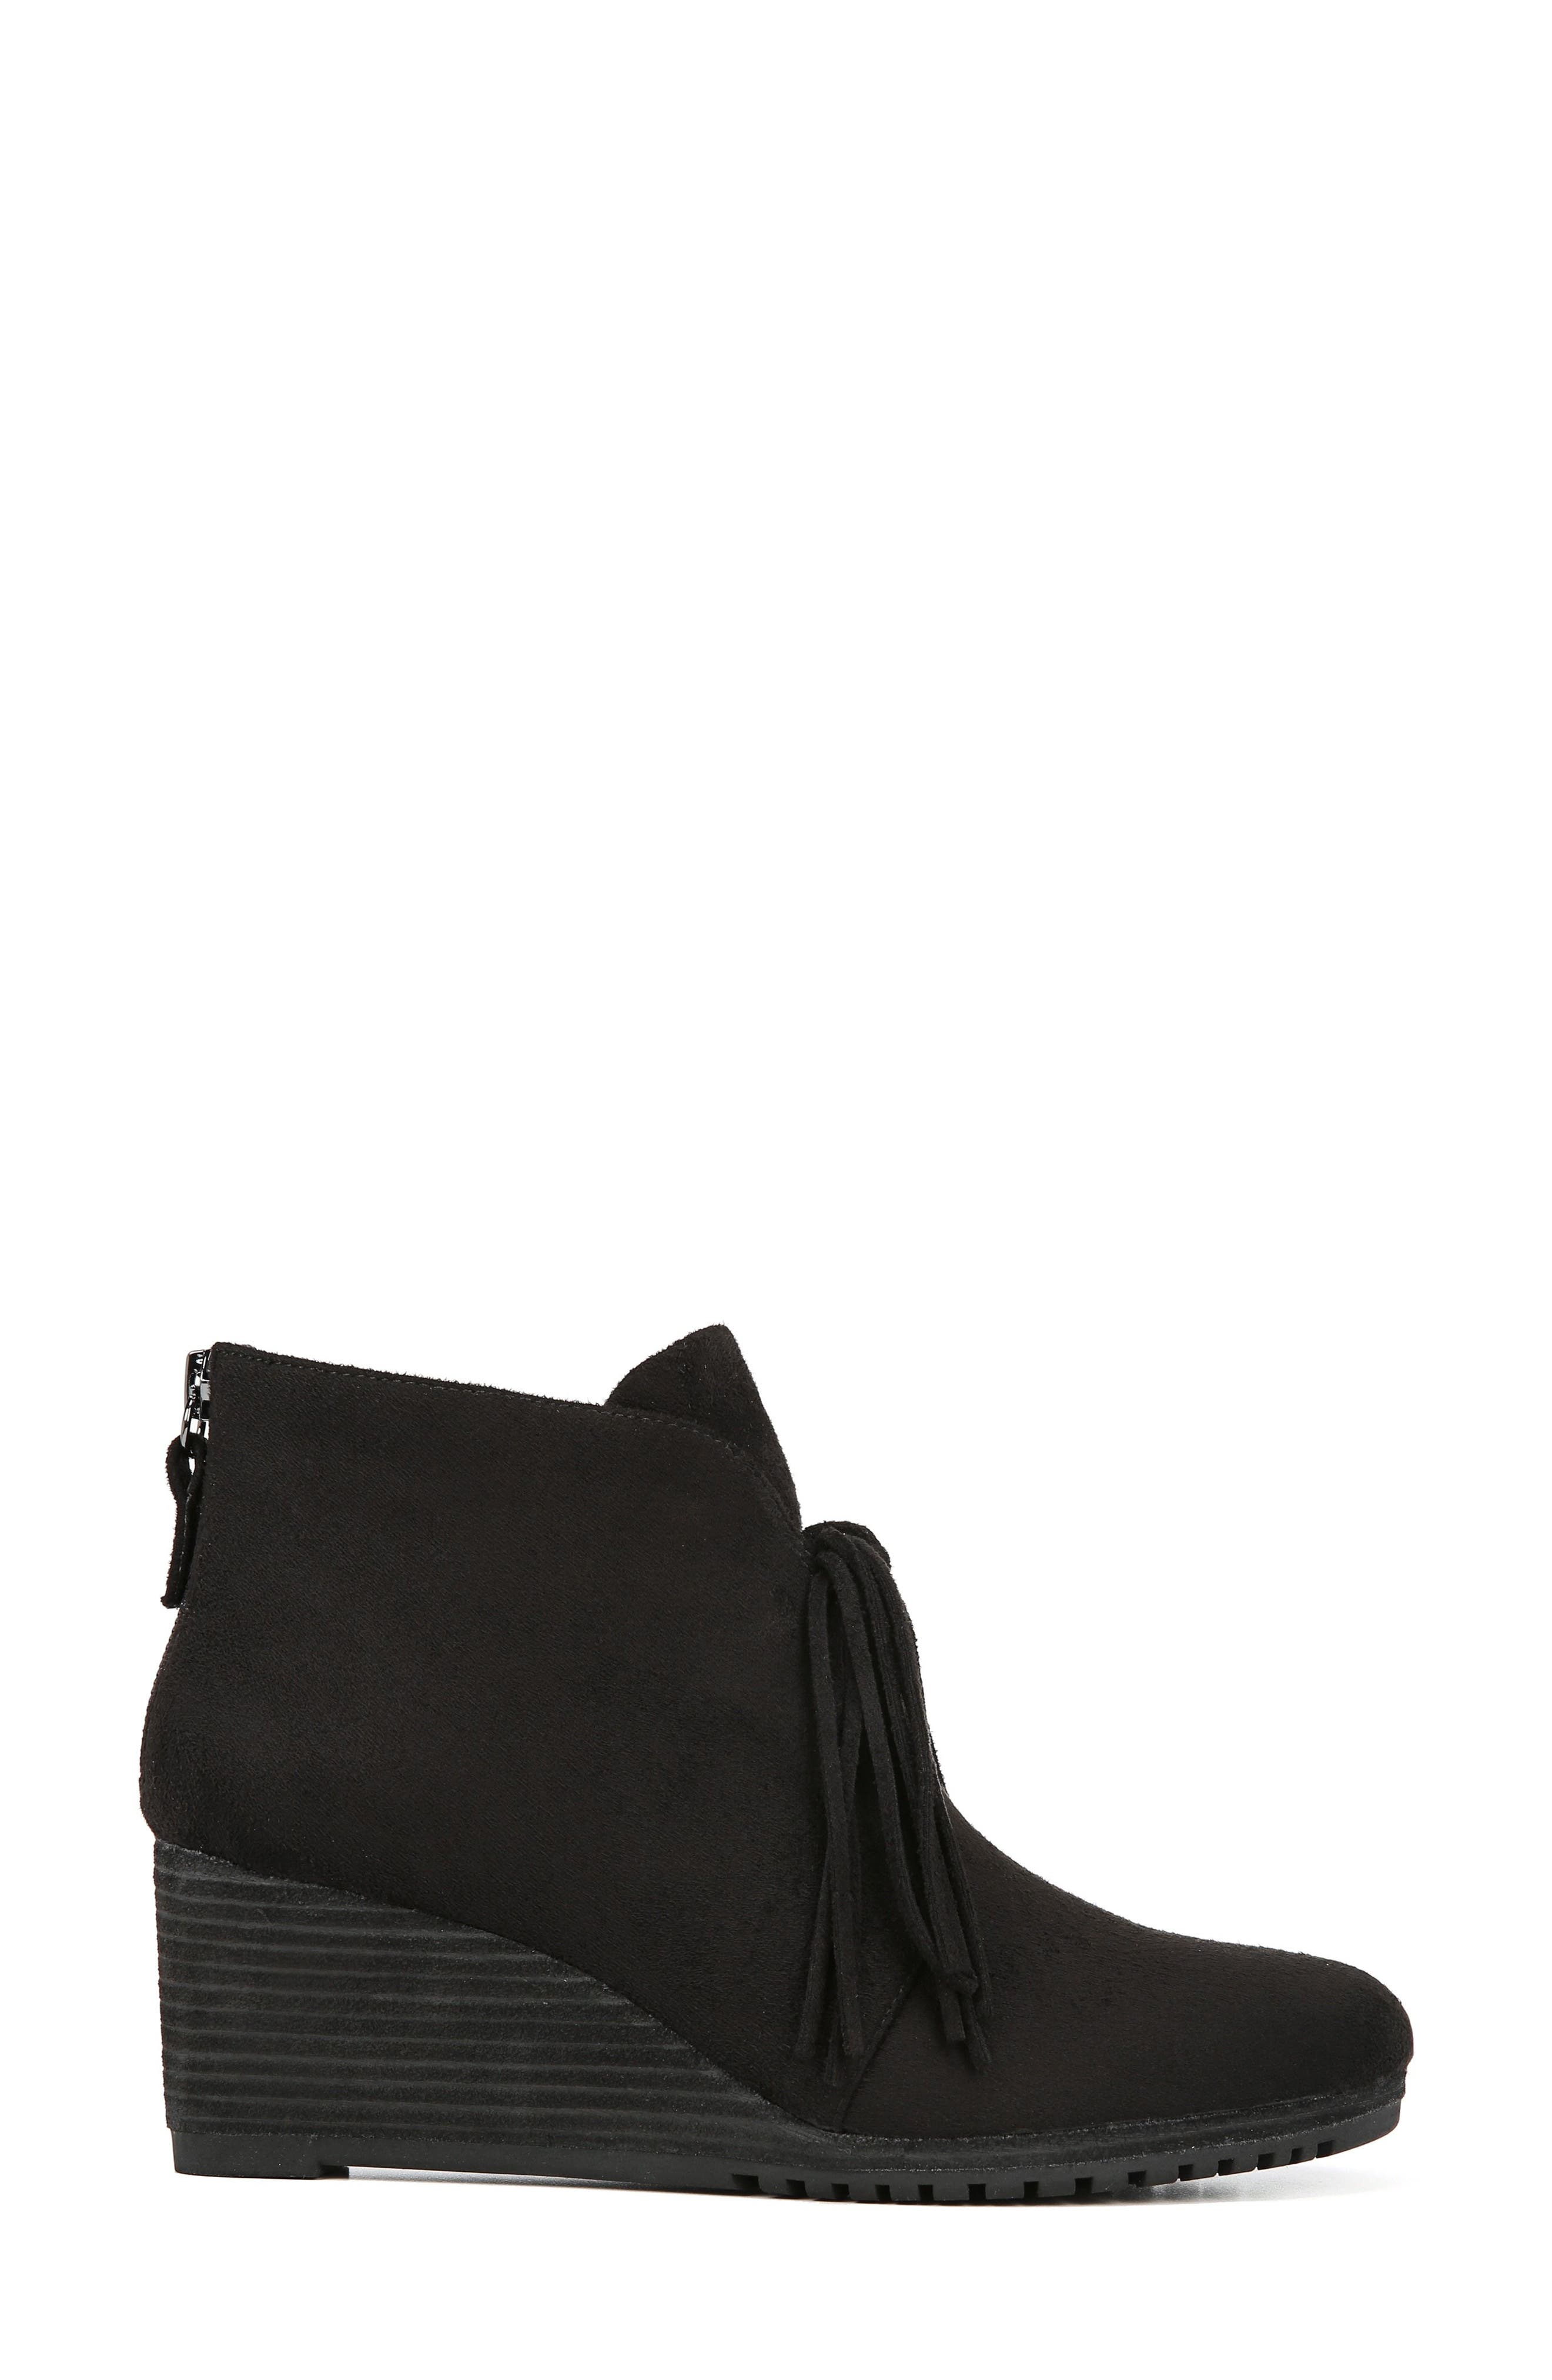 Classify Tassel Wedge Bootie,                             Alternate thumbnail 2, color,                             BLACK FABRIC